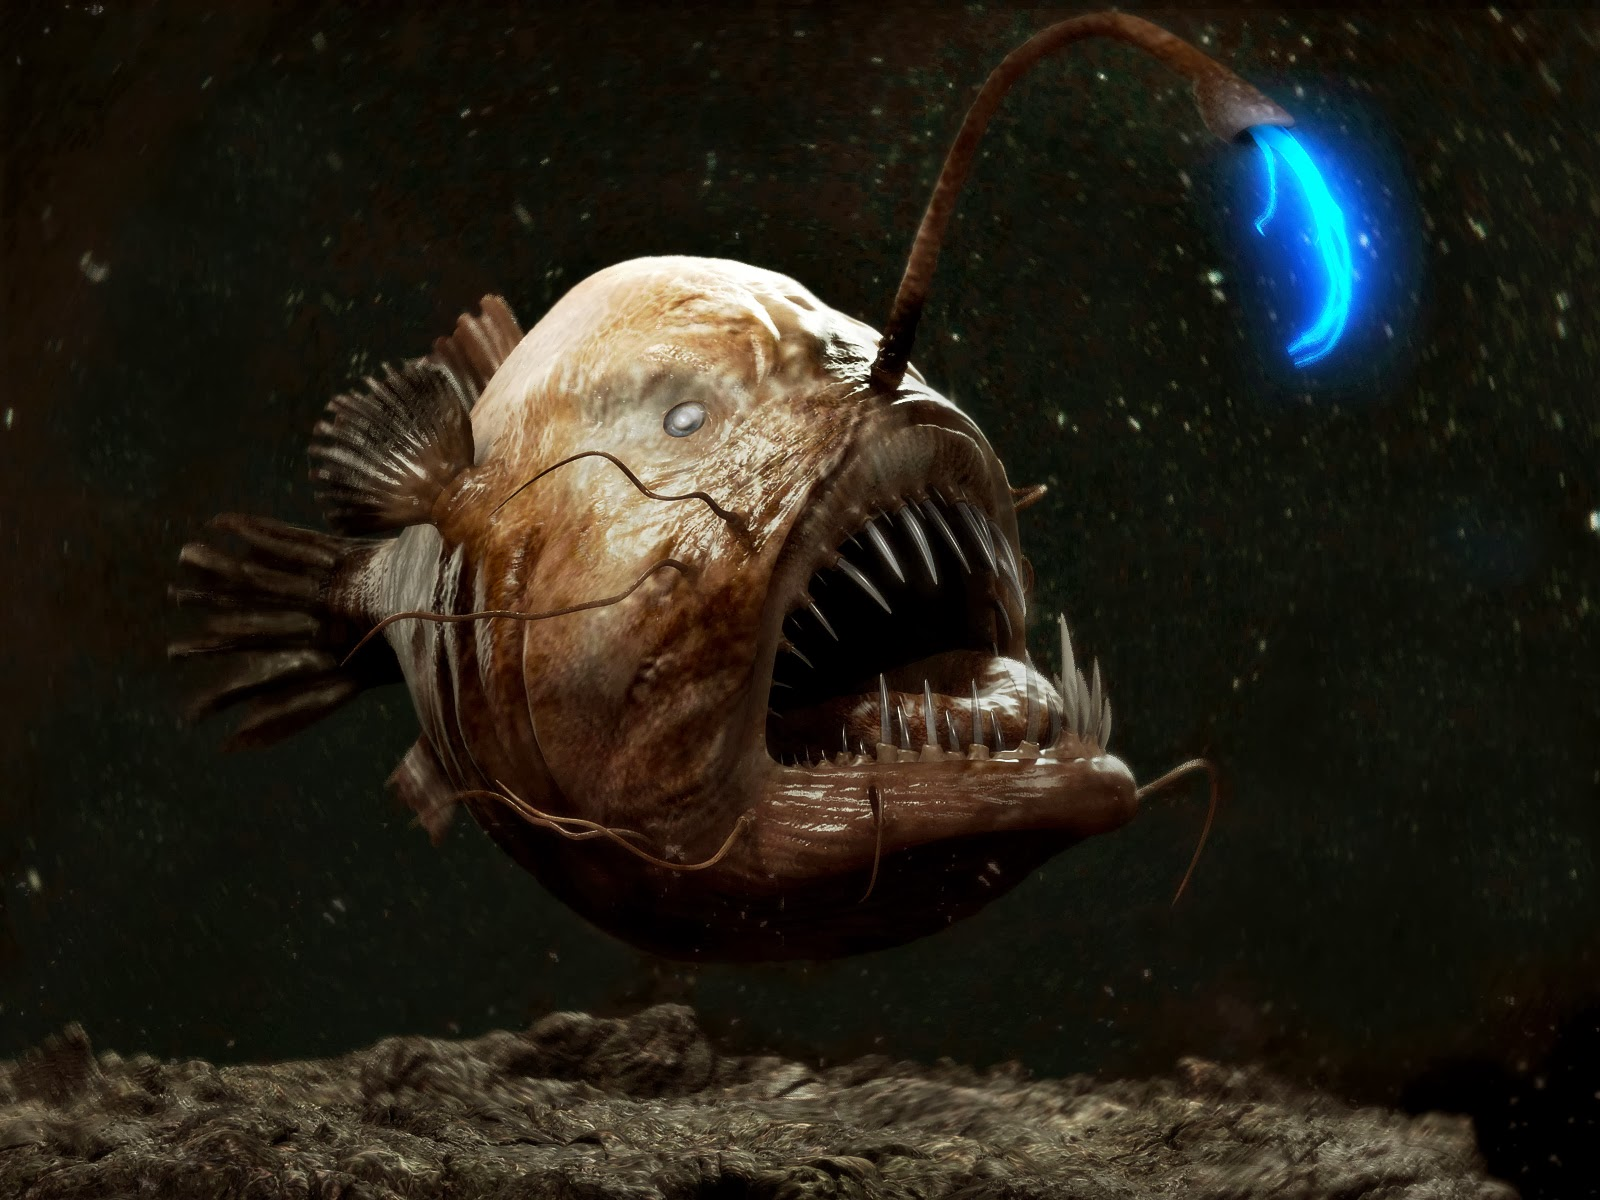 Angler fish finding nemo for What do angler fish eat